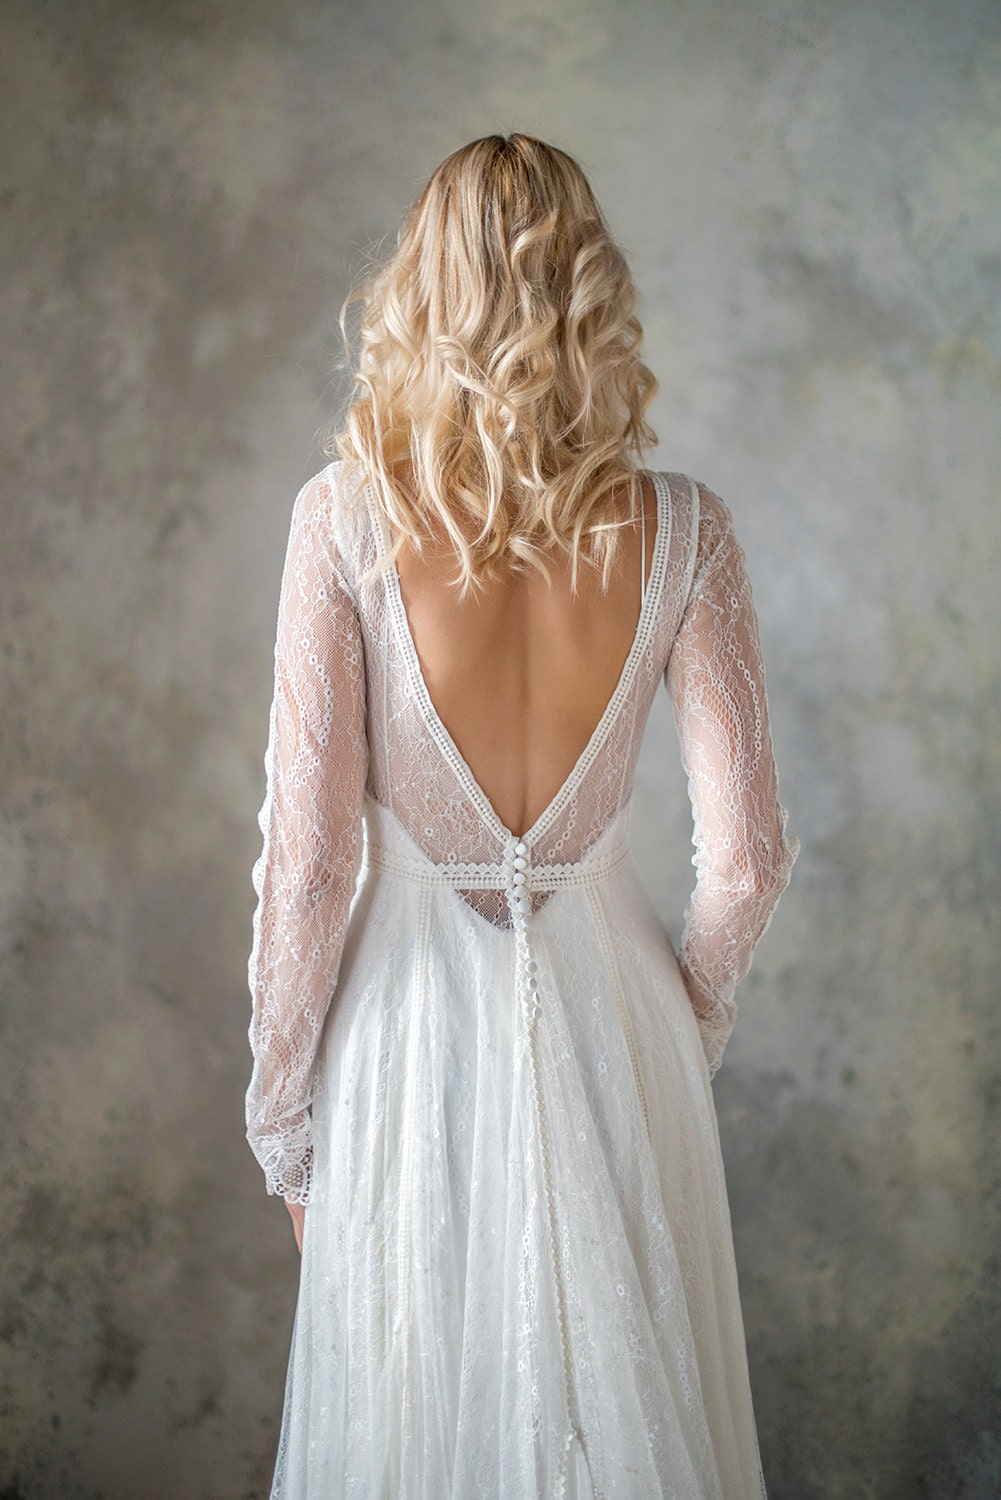 boho wedding dress wedding dress storage Long Sleeve boho wedding dress bohemian wedding dress lace wedding dress backless wedding dress boho bridal gown bridal dress